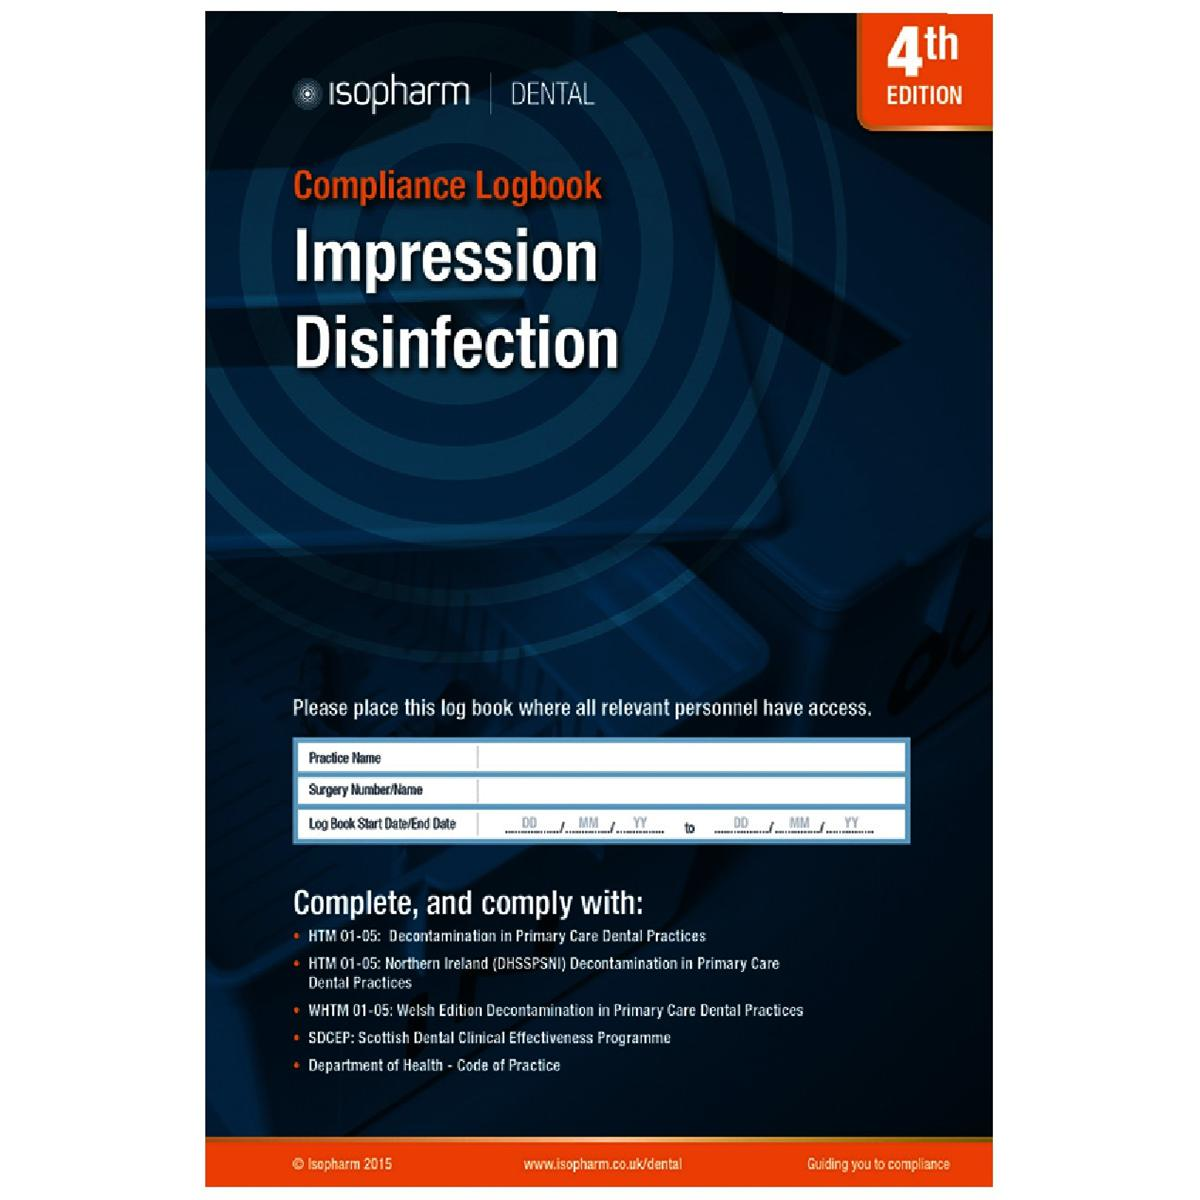 Impression Disinfection Compliance Logbook